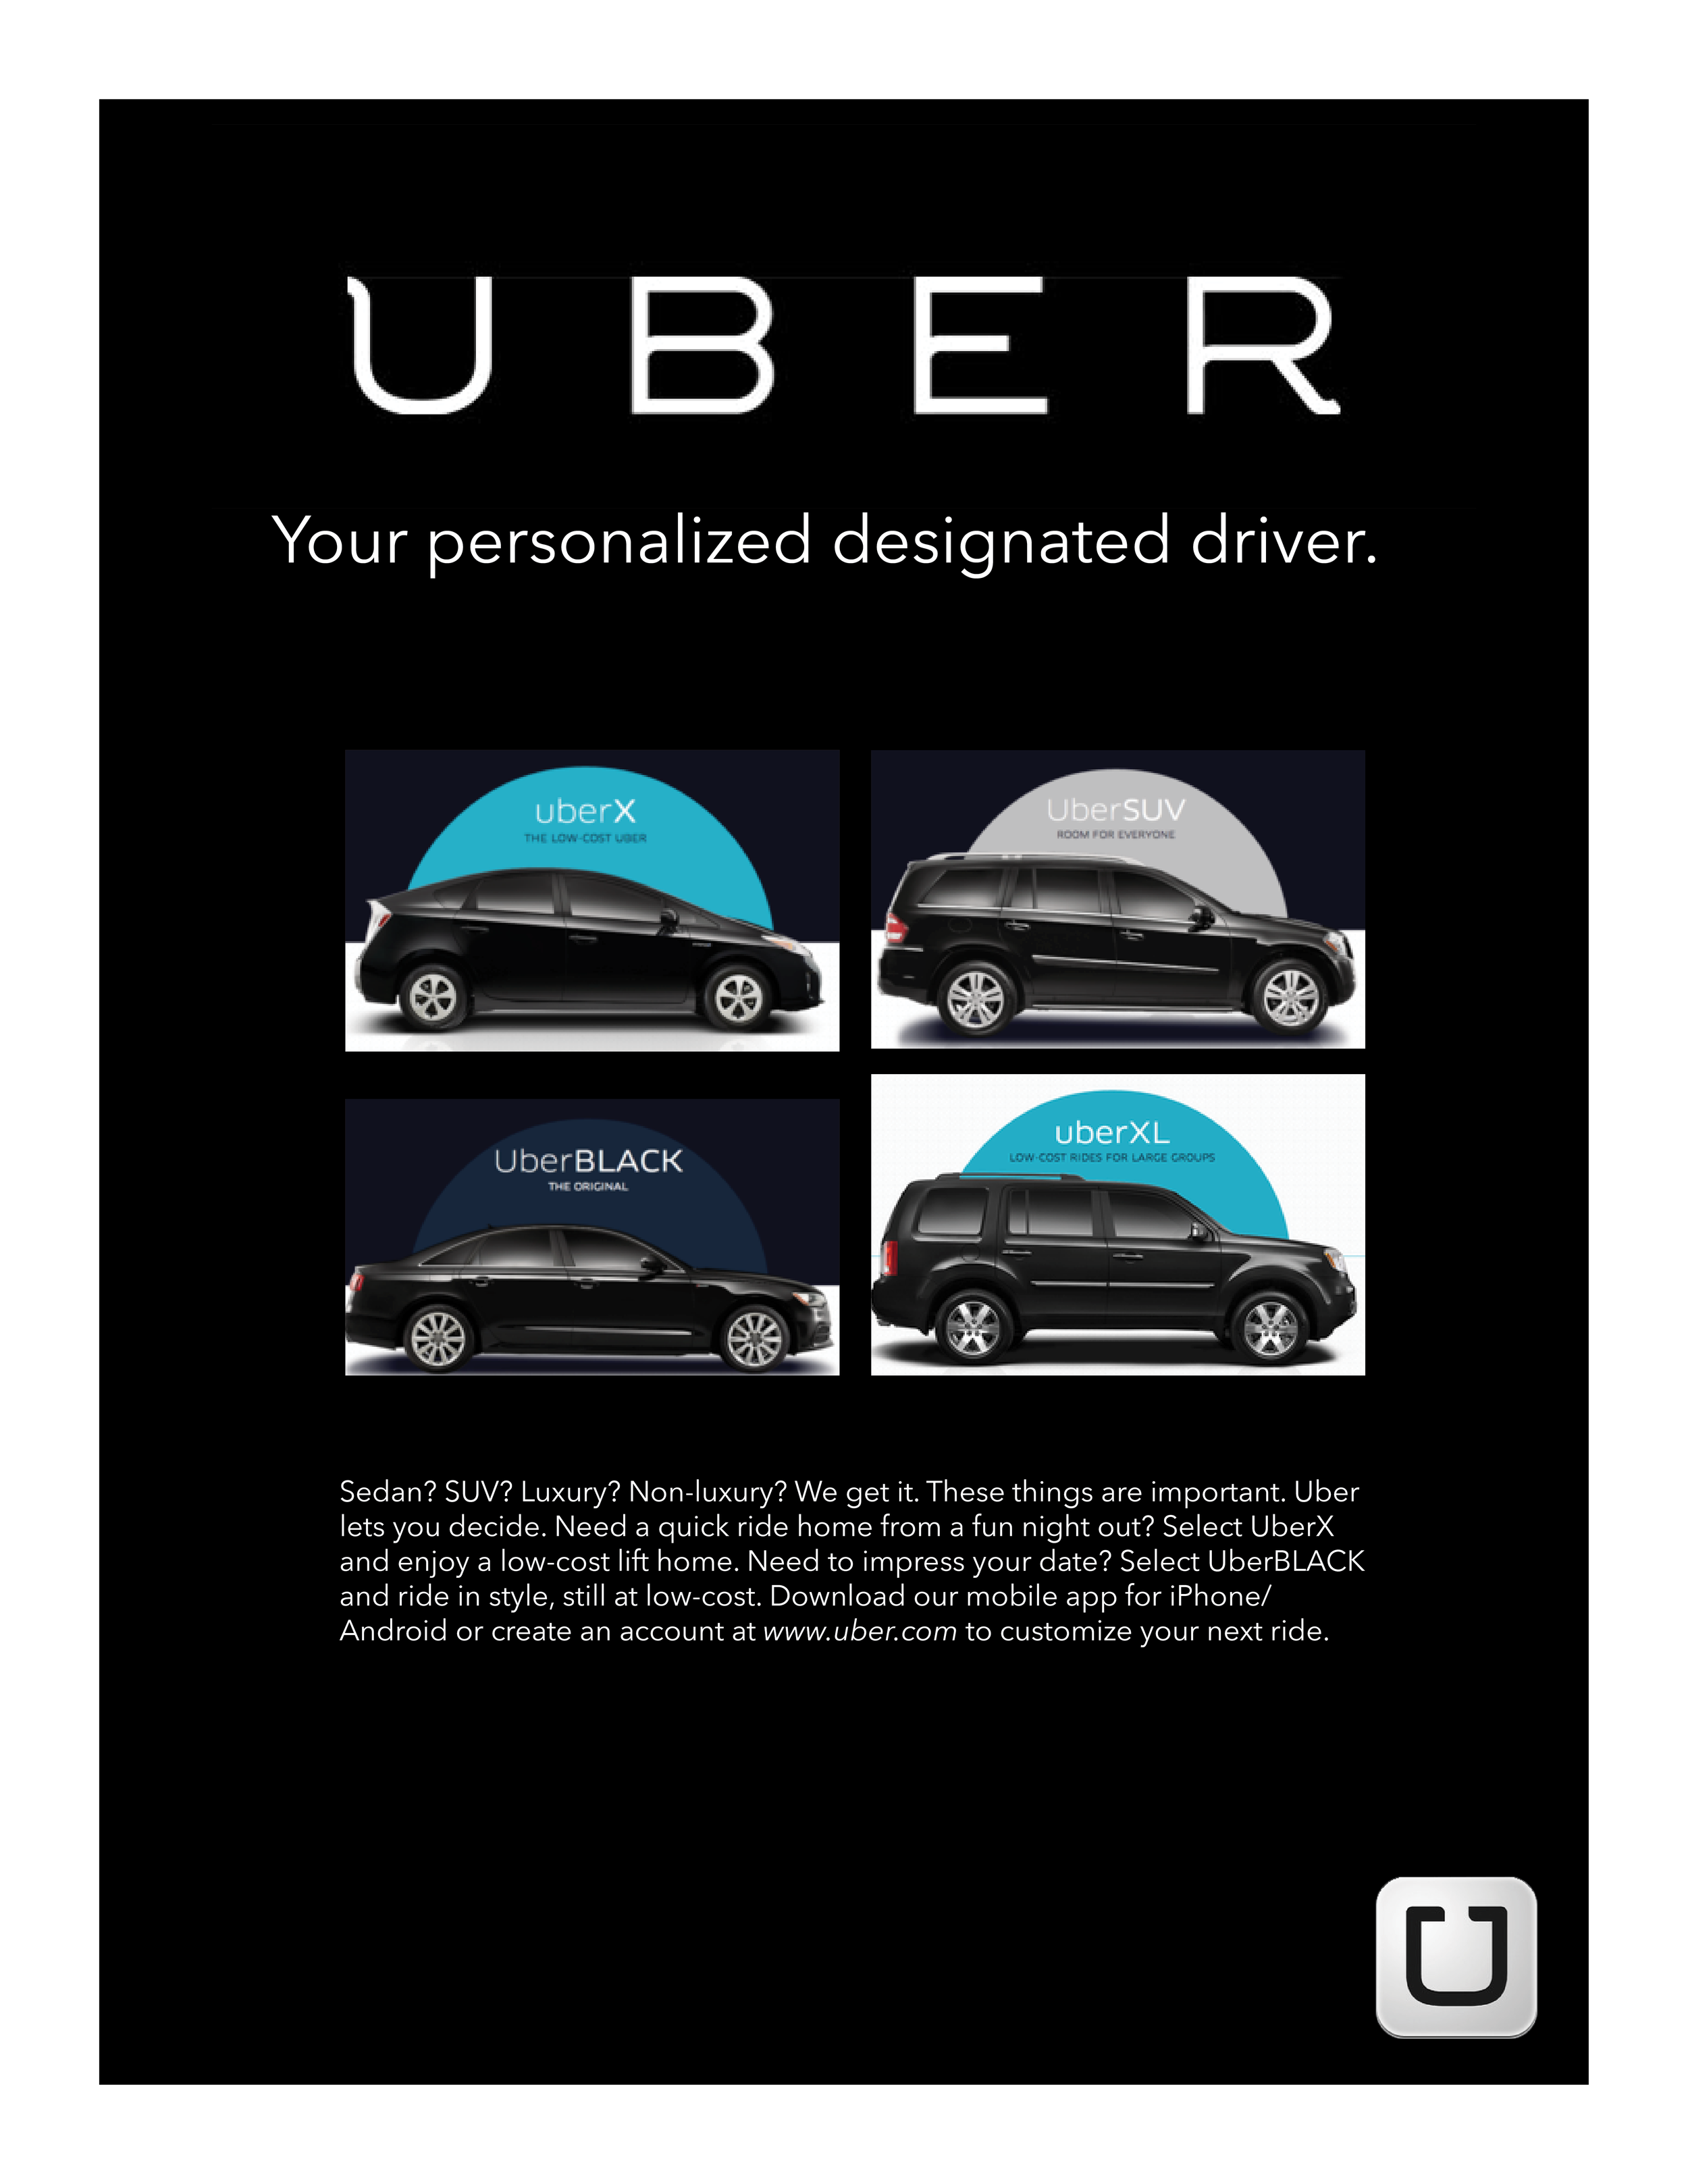 Uber_ad2_cars.png